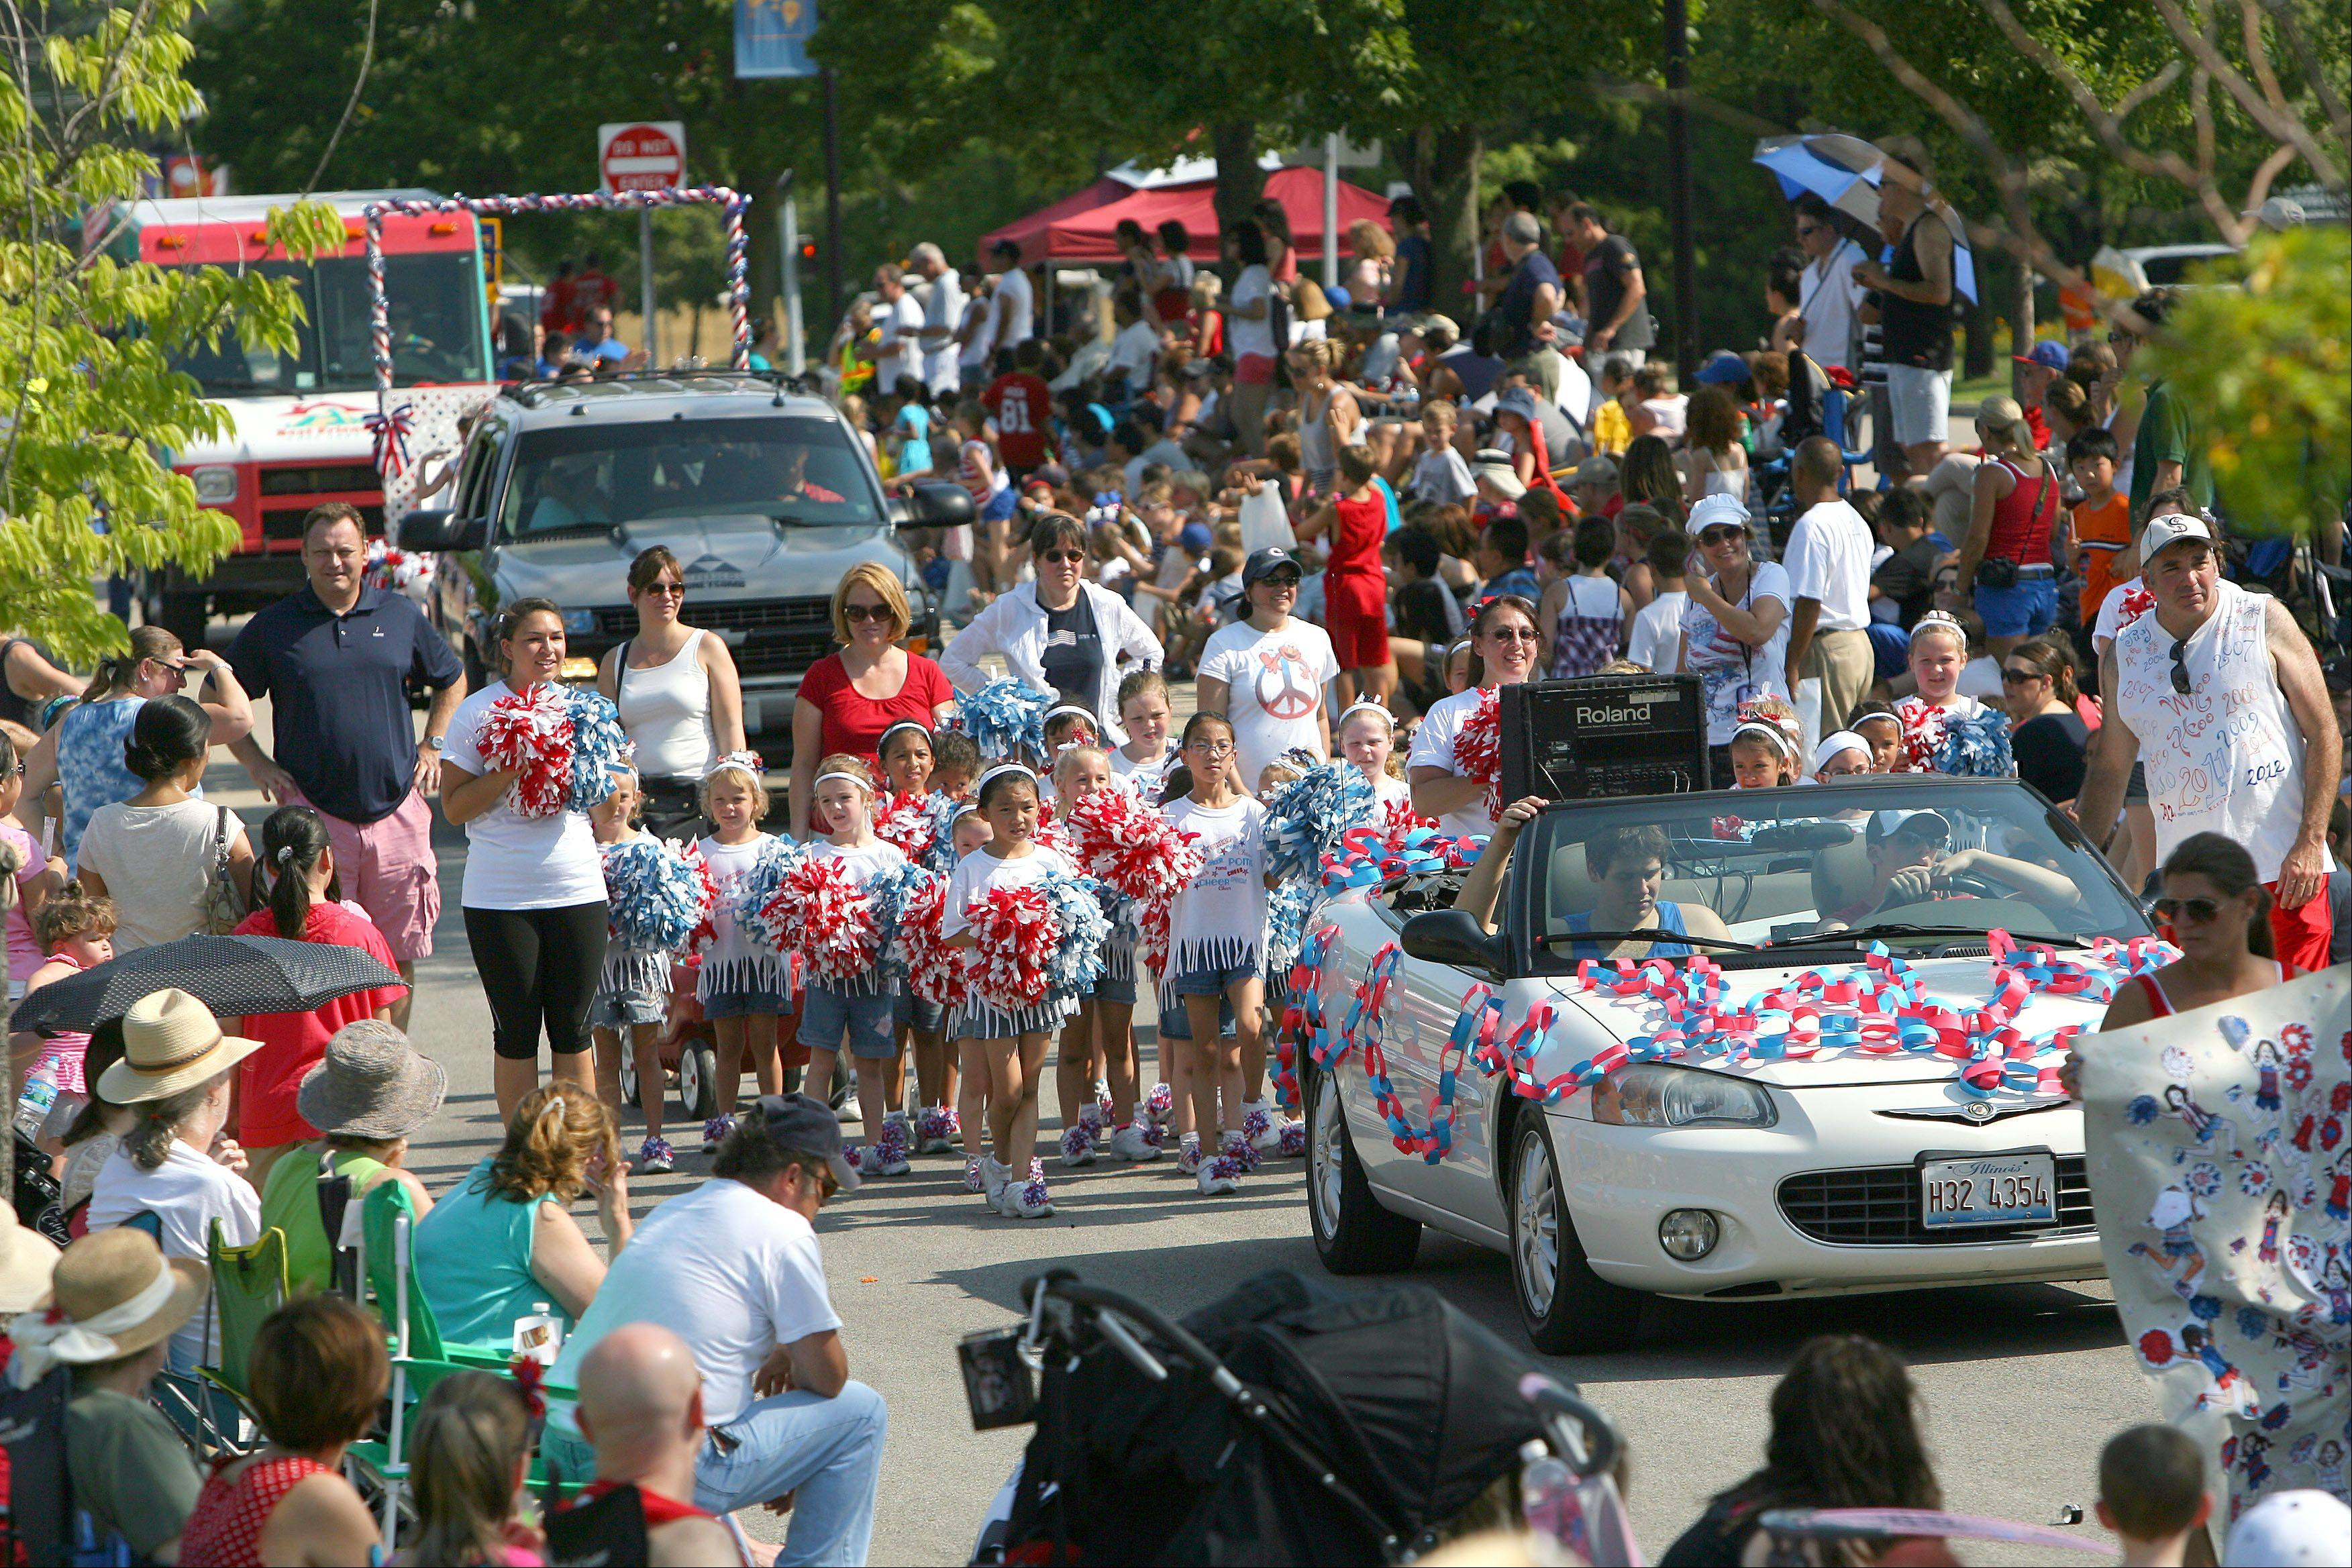 The Vernon Hills Fourth of July Parade kicked off Wednesday morning winding down Deerpath and Atrium Drives.